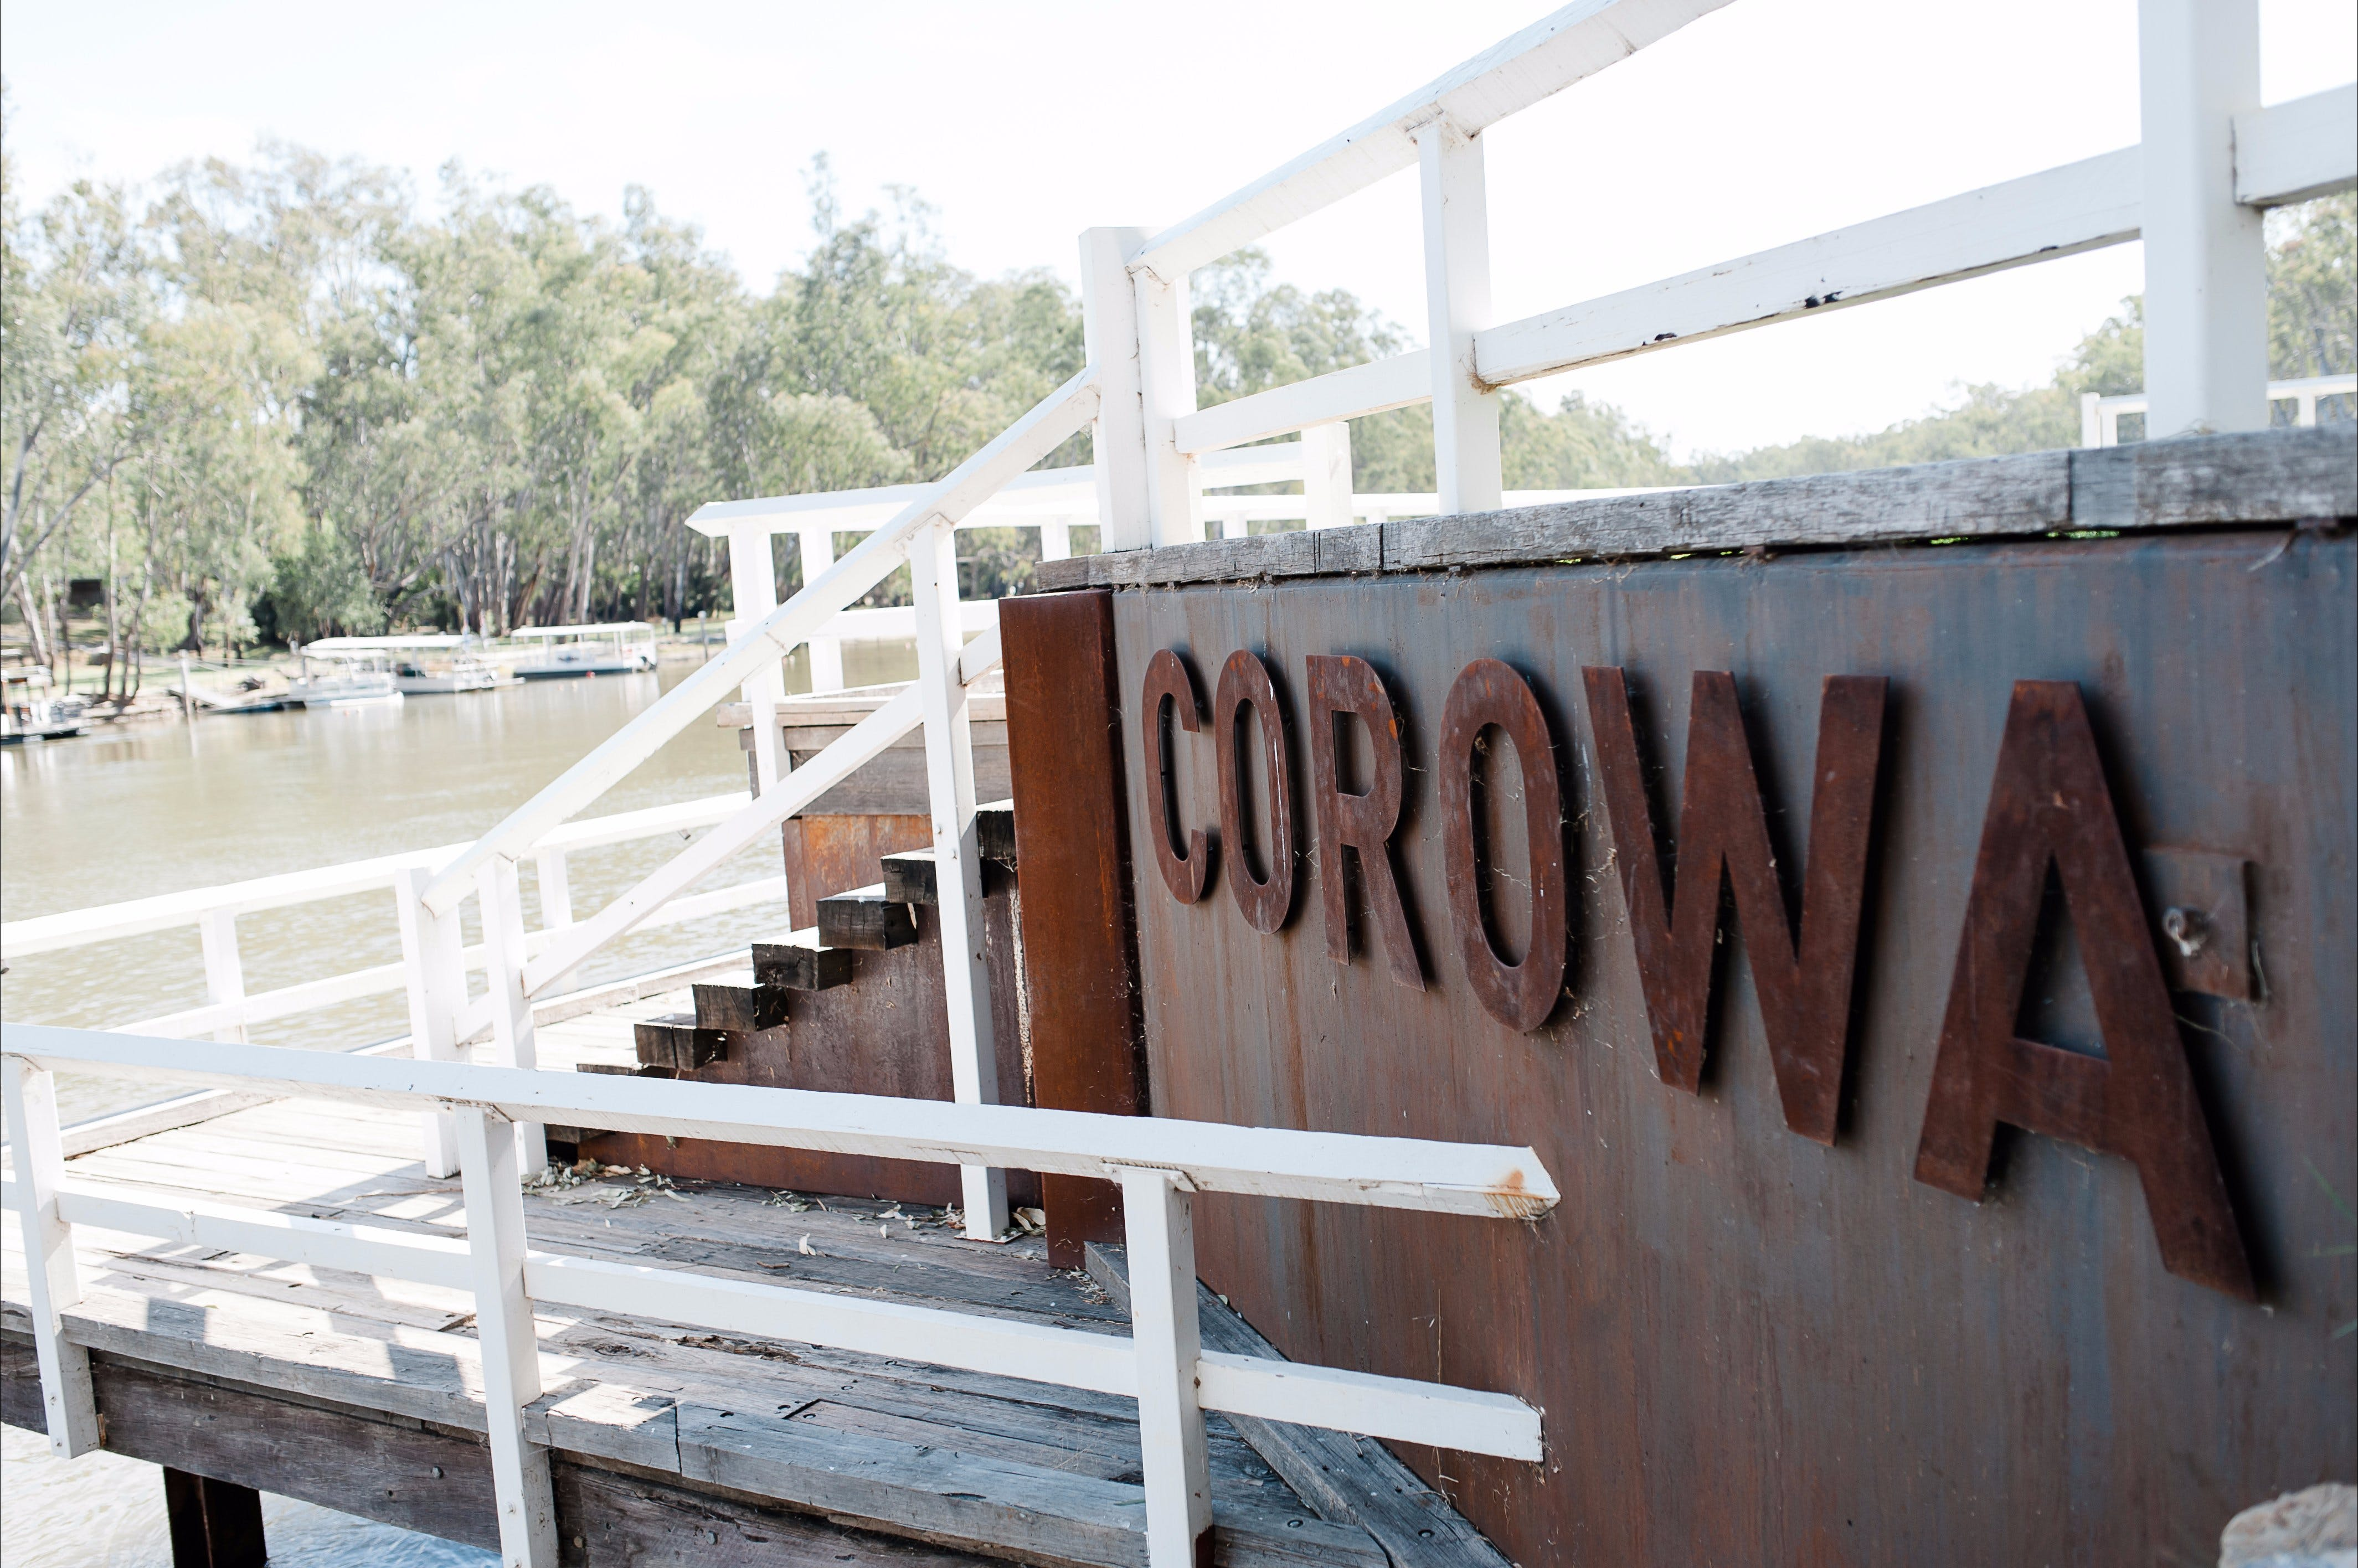 Corowa Foreshore - Find Attractions